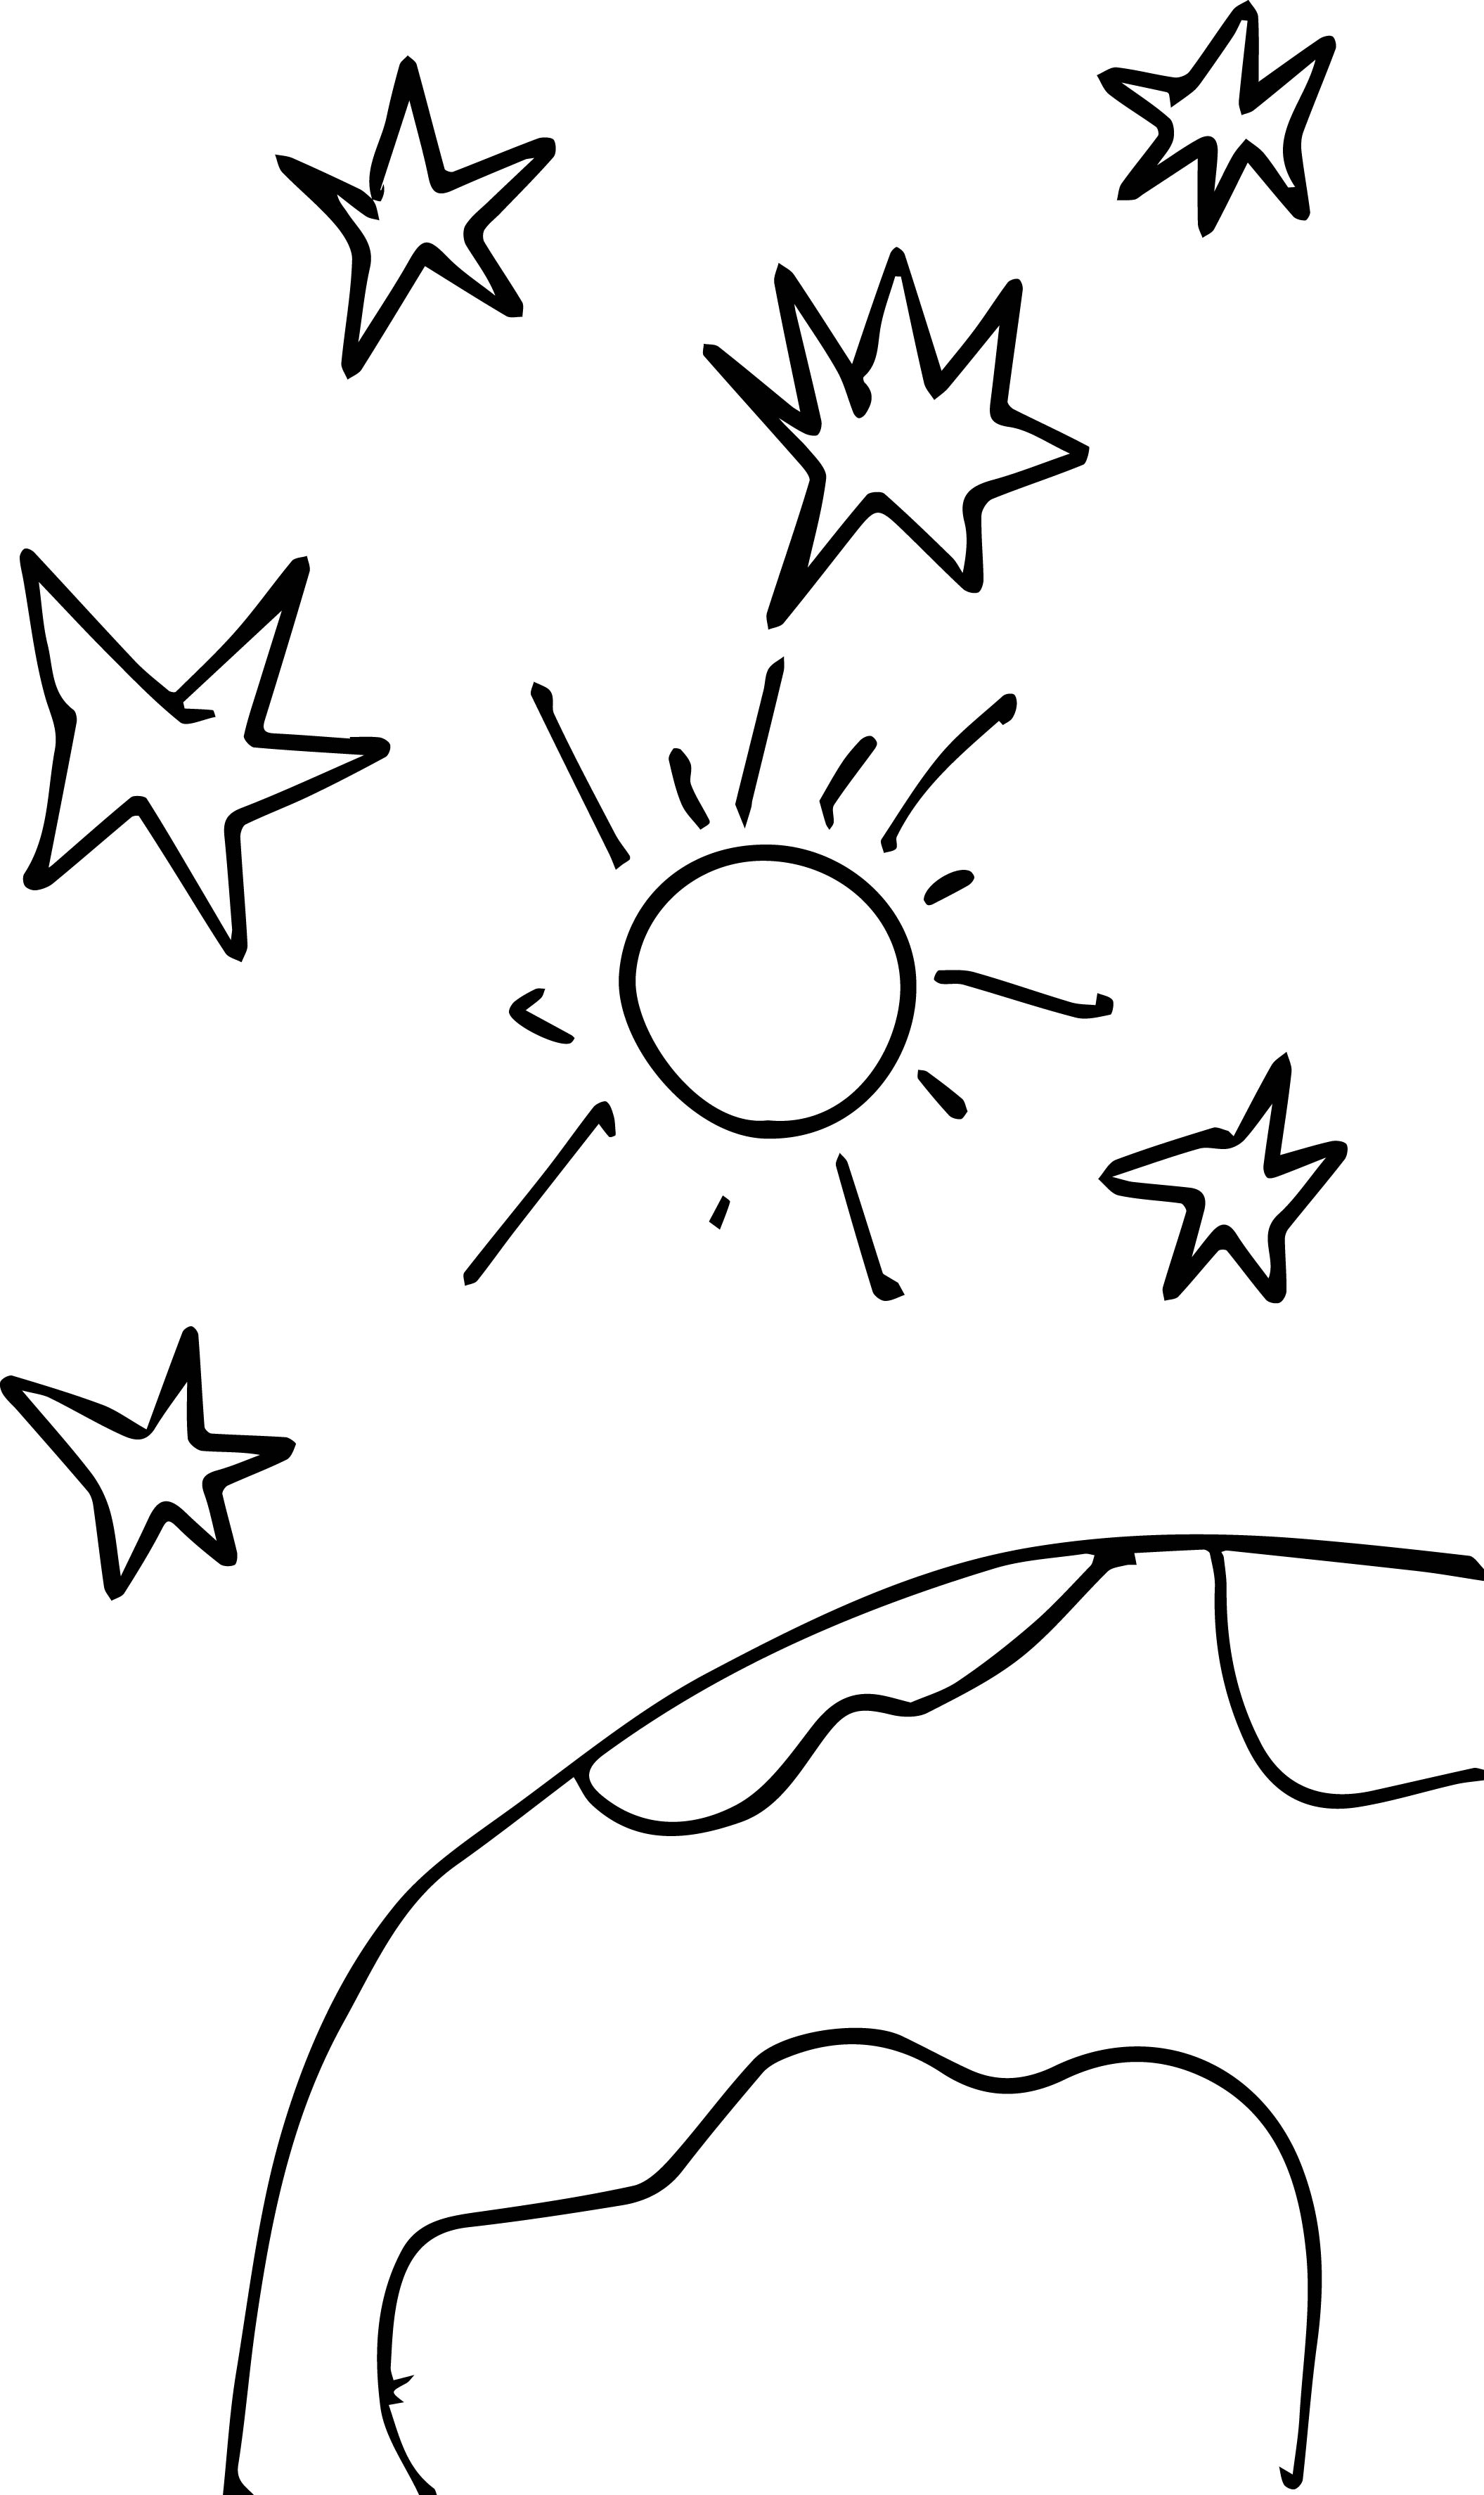 space stars sun world 1 own drawing coloring page wecoloringpage